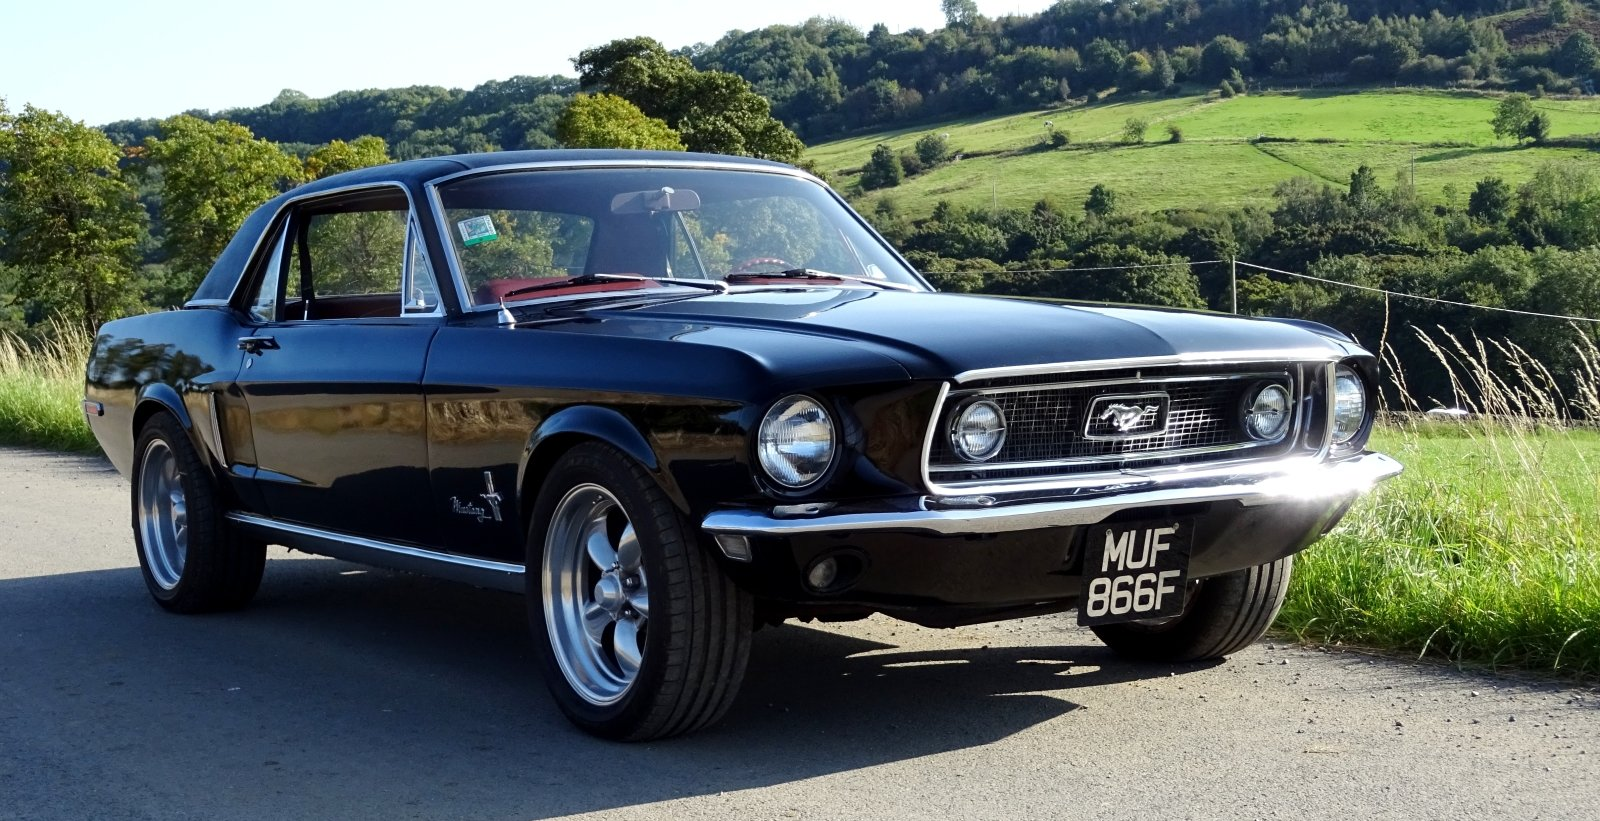 1968 AWESOME FORD MUSTANG AMERICAN V8 CLASSIC MUSCLE CAR For Sale (picture 2 of 12)